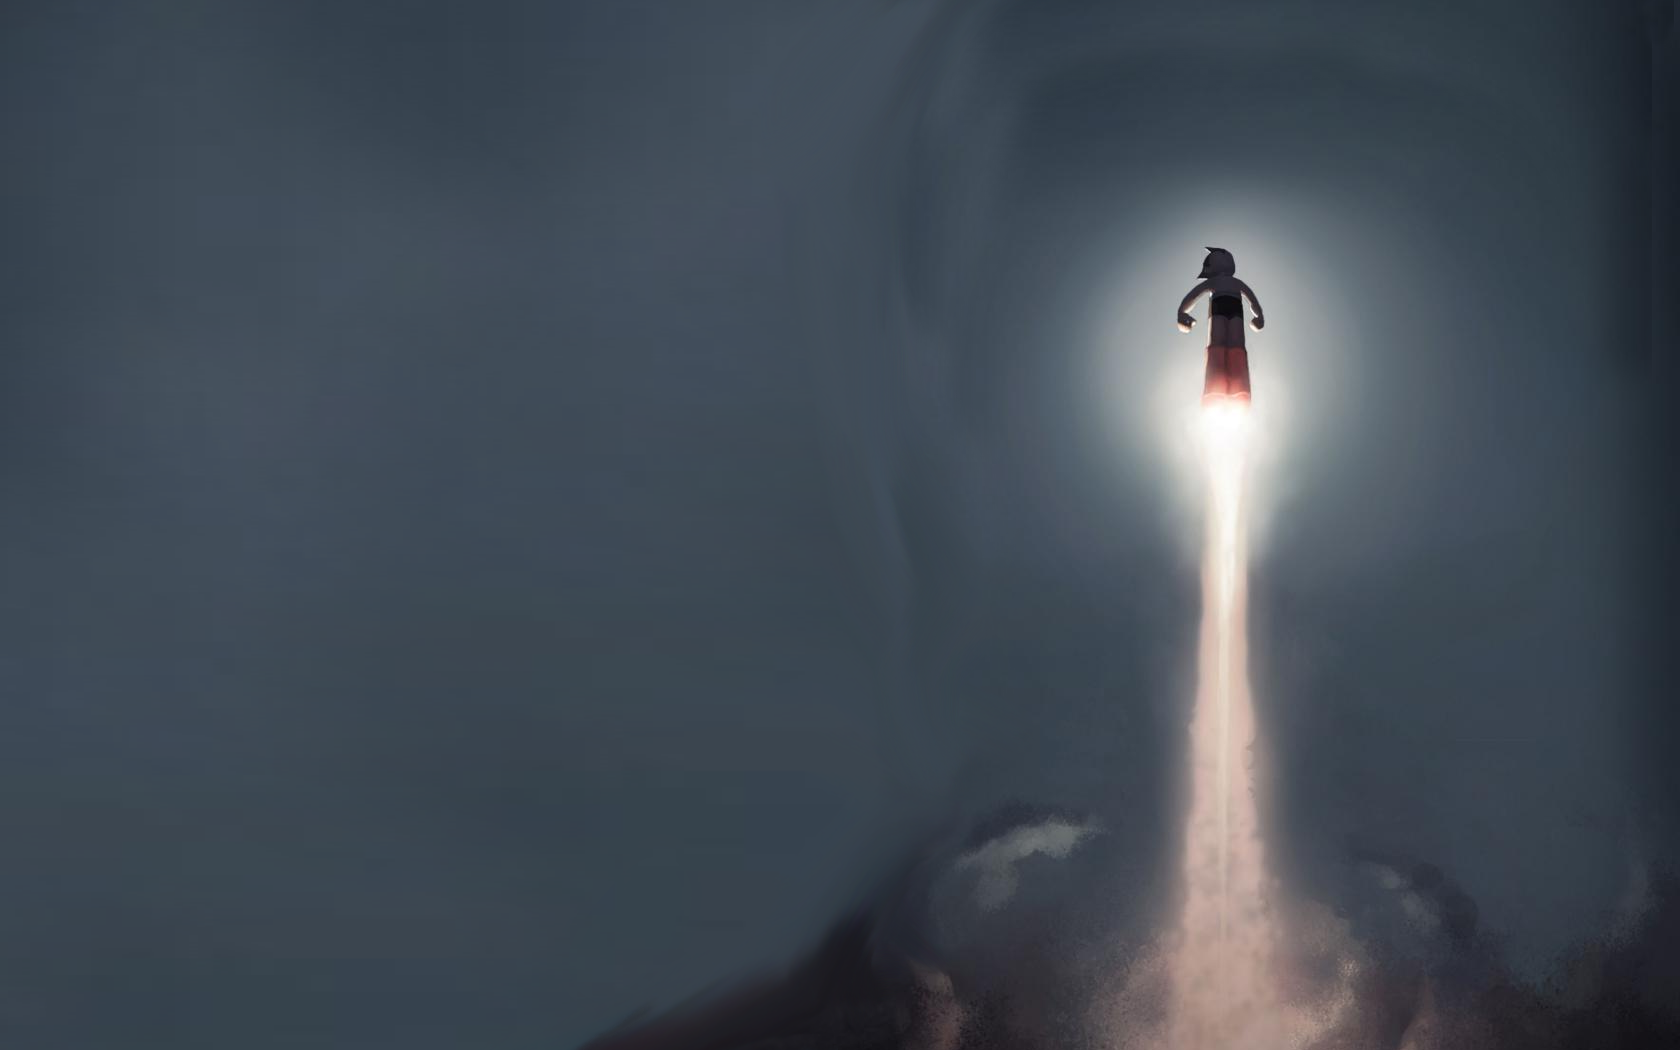 13 Astro Boy HD Wallpapers   Backgrounds - Wallpaper Abyss